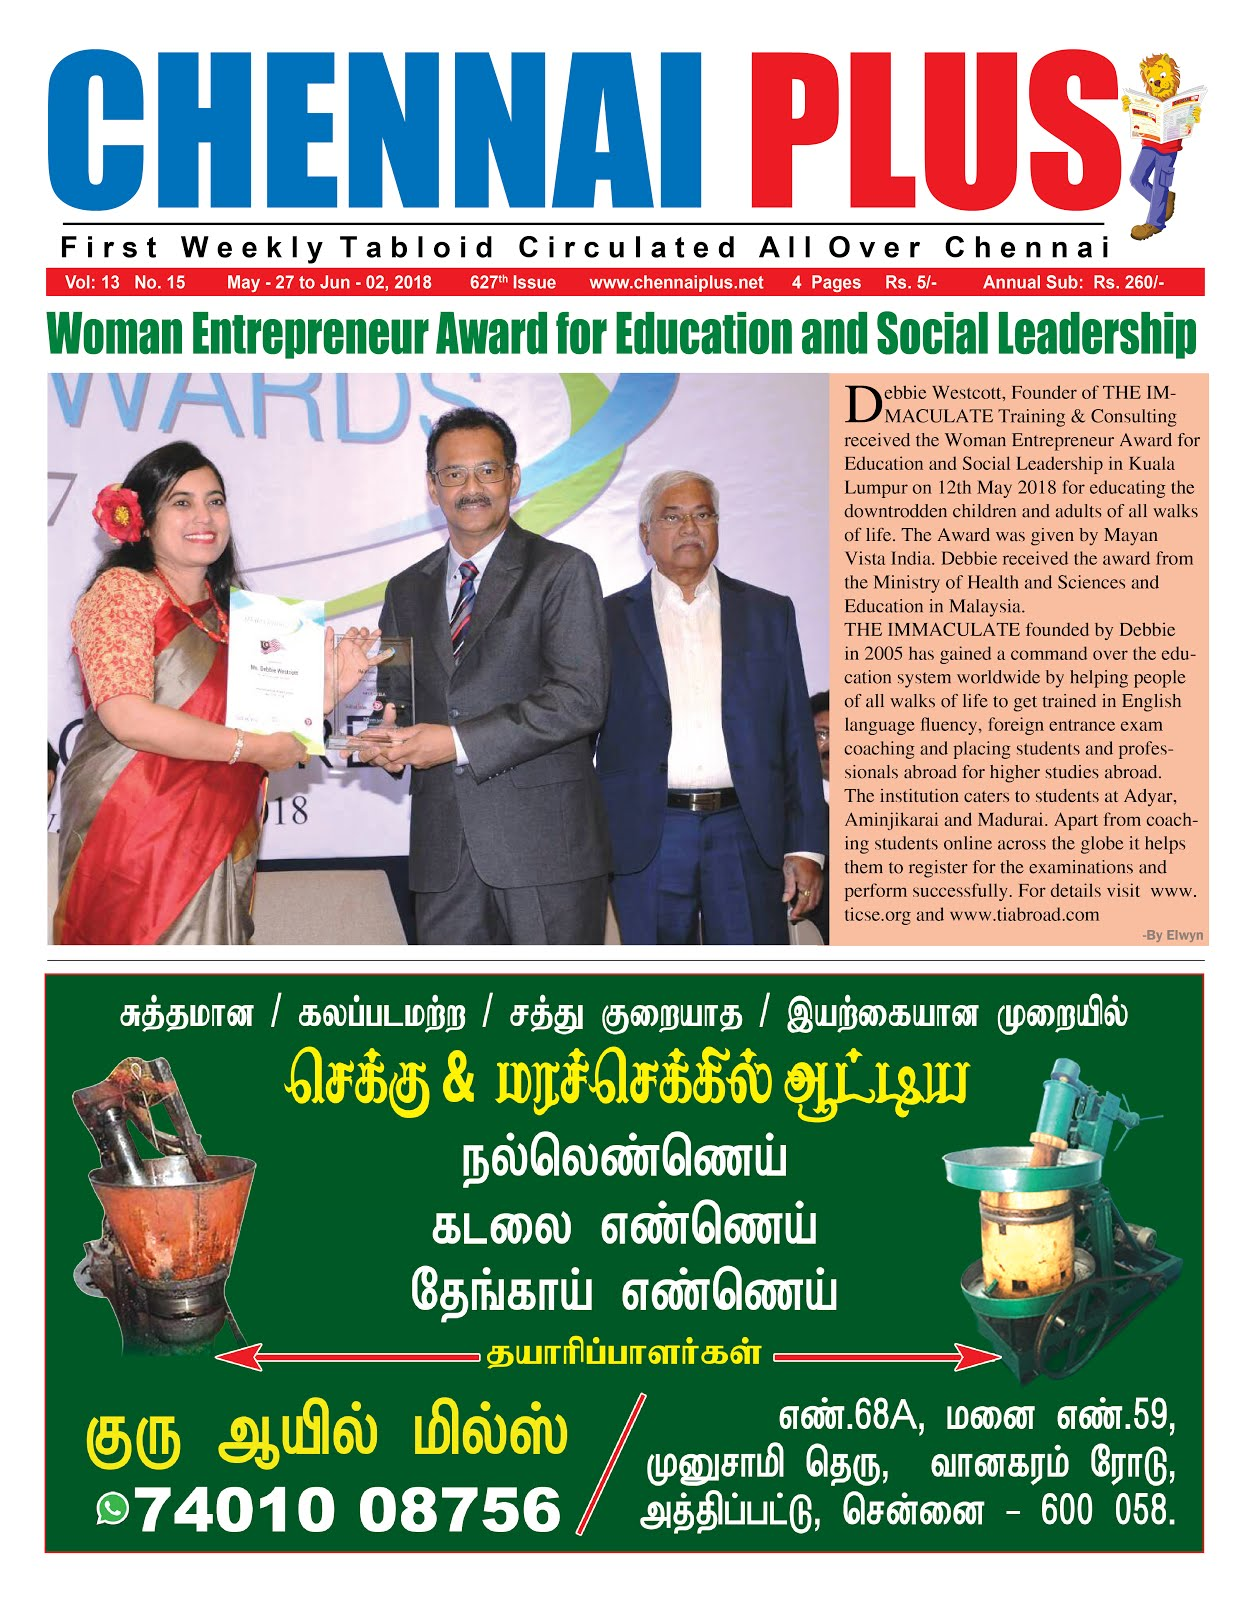 Chennai Plus_27.05.2018_Issue